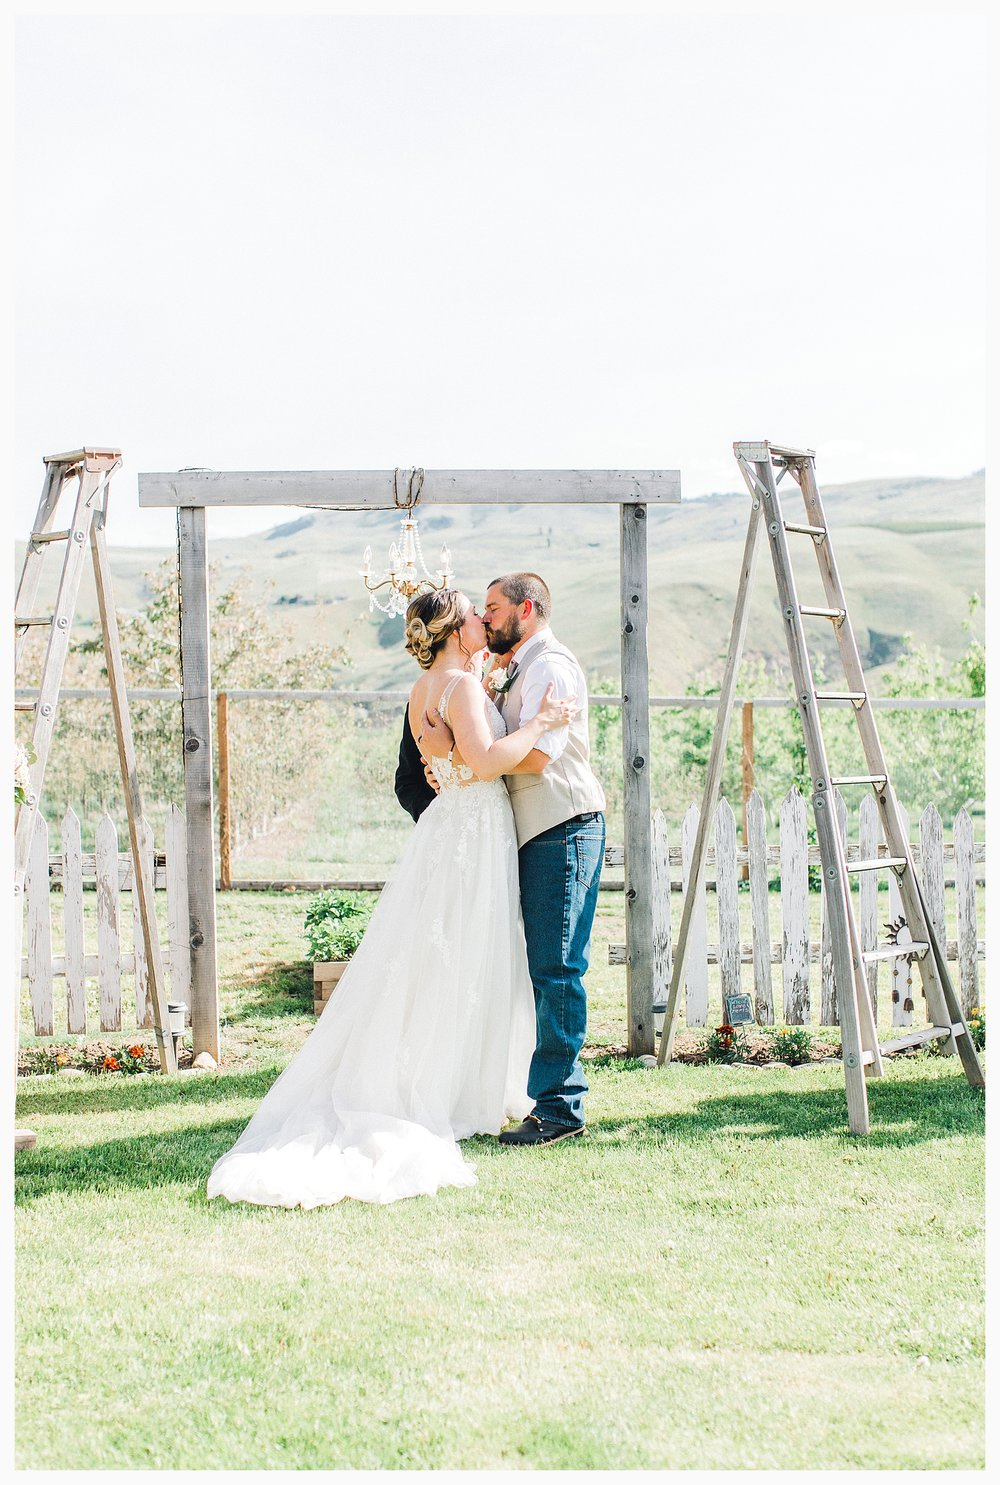 Rustic barn wedding in Wenatchee Washington at Sunshine Ranch on Easy Street, Emma Rose Company Seattle PNW Light and Airy Wedding Photographer_0063.jpg